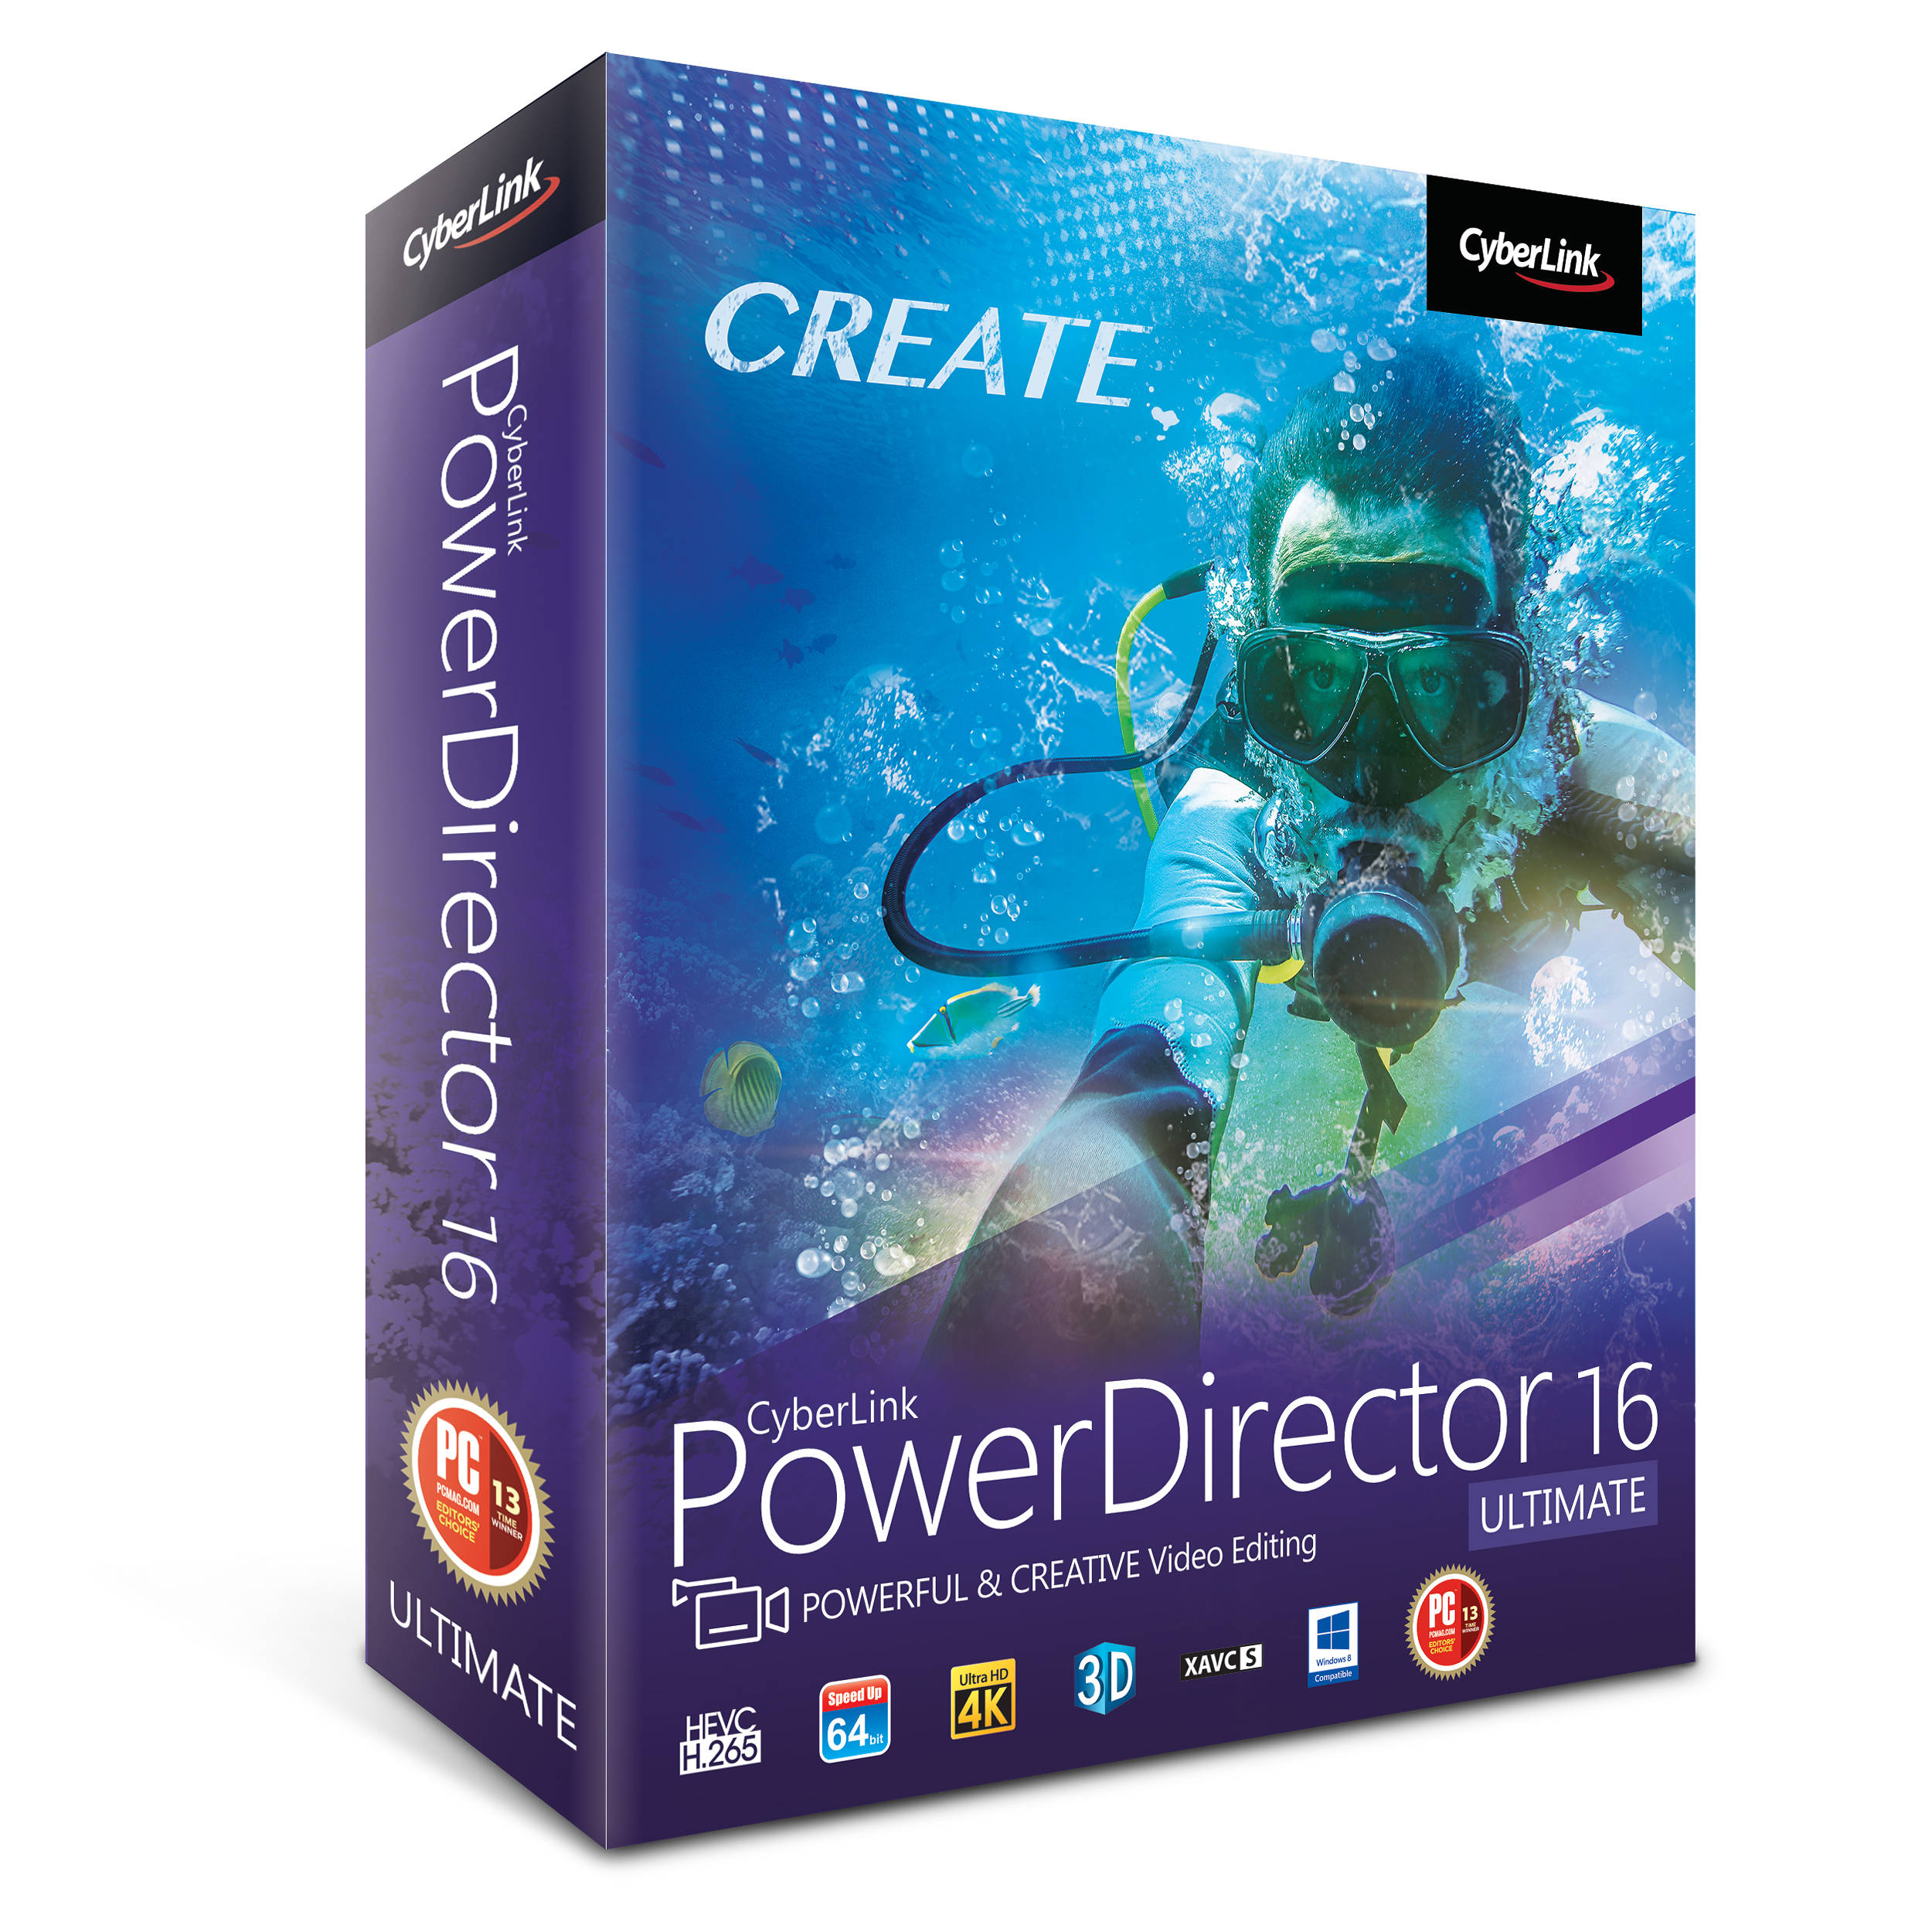 Cyberlink Powerdirector 16 Ultimate Dvd Pdr Eg00 Rpm0 00 B & Amph